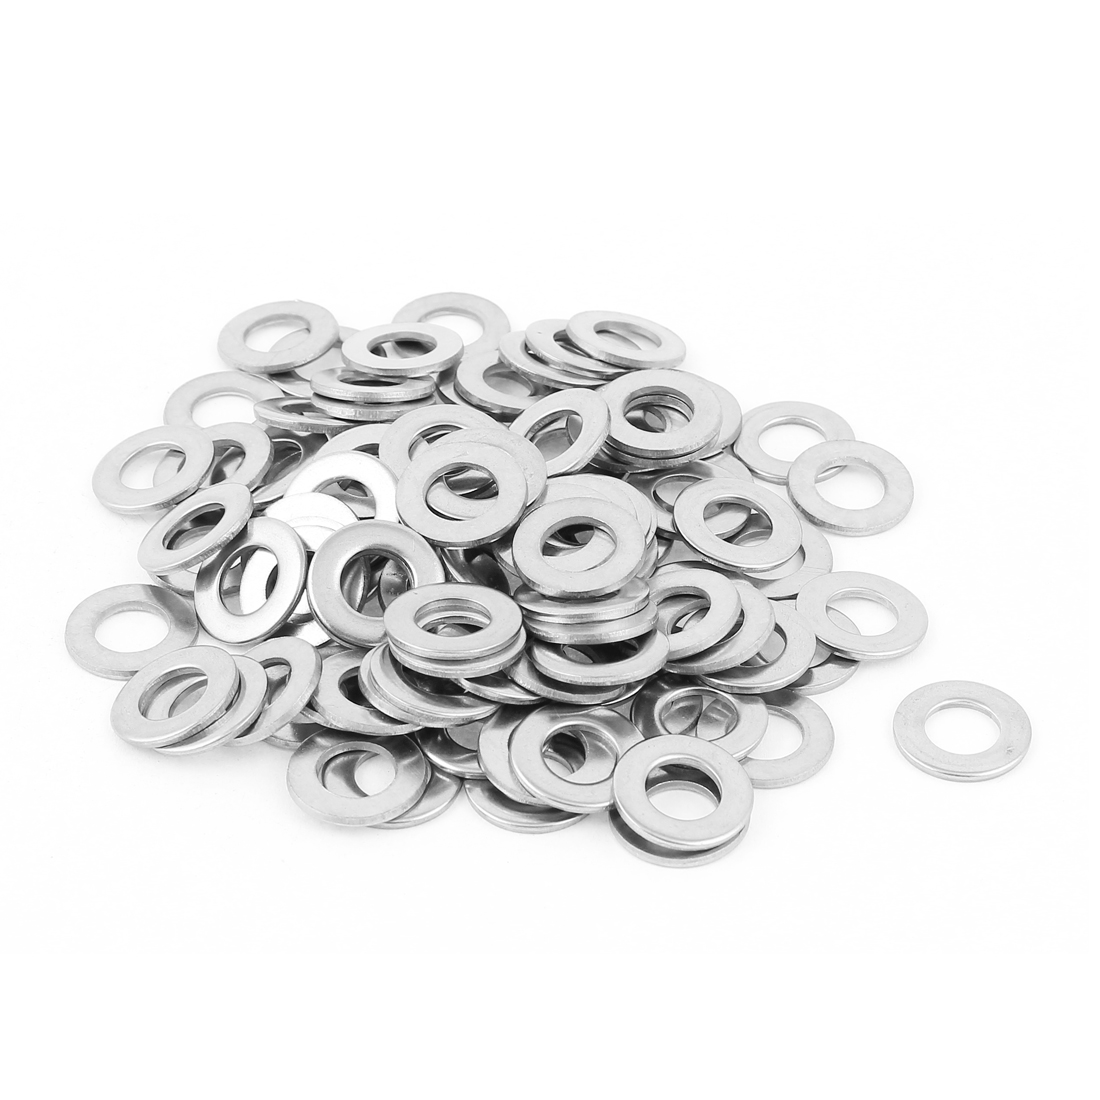 50Pcs M8 x 16mm x 1.5mm 304 Stainless Steel Flat Washer for Screw Bolt